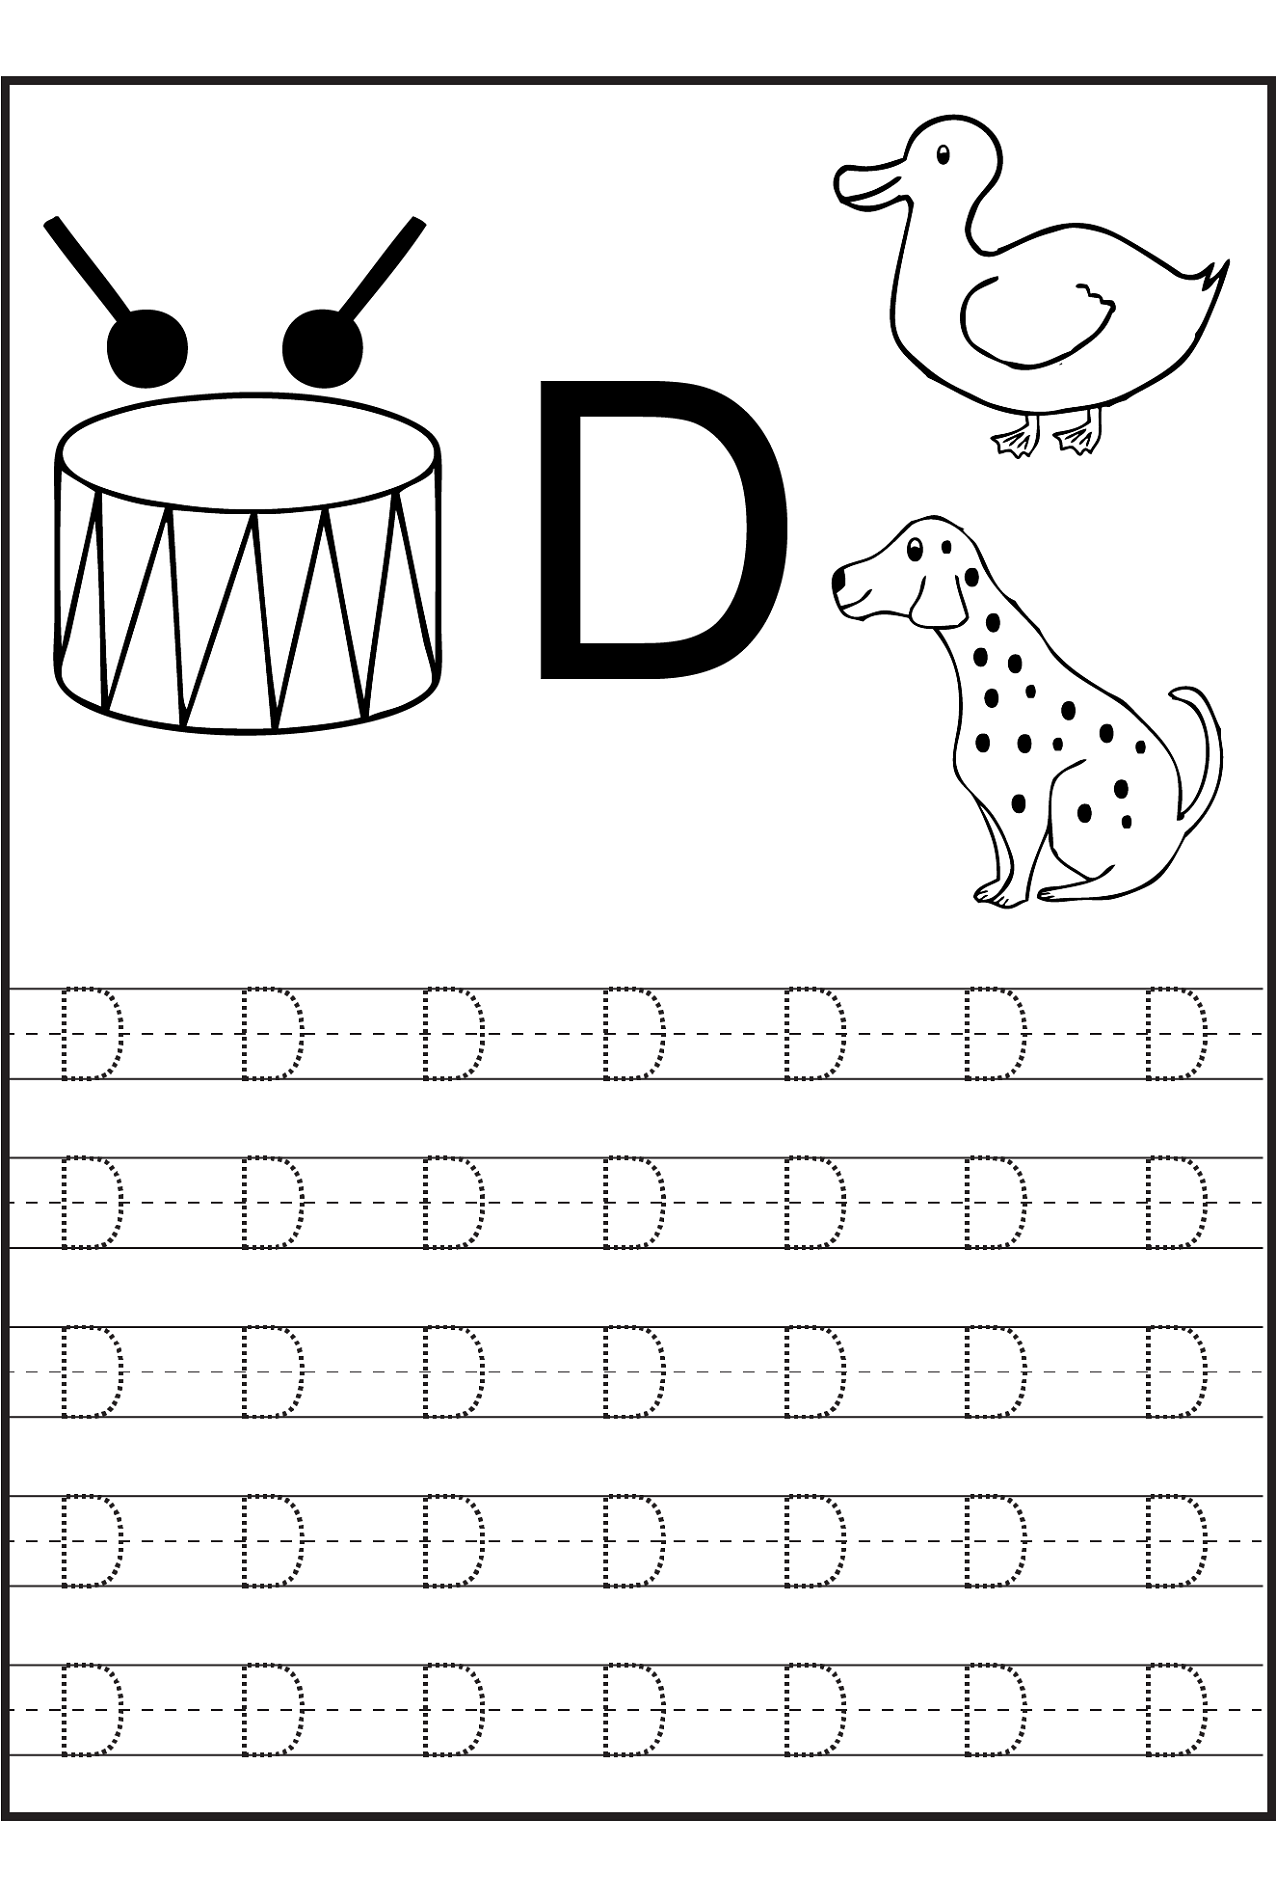 Uncategorized The Mailbox Worksheets letter d worksheets the mailbox traceable letters worksheet for children golden age activities